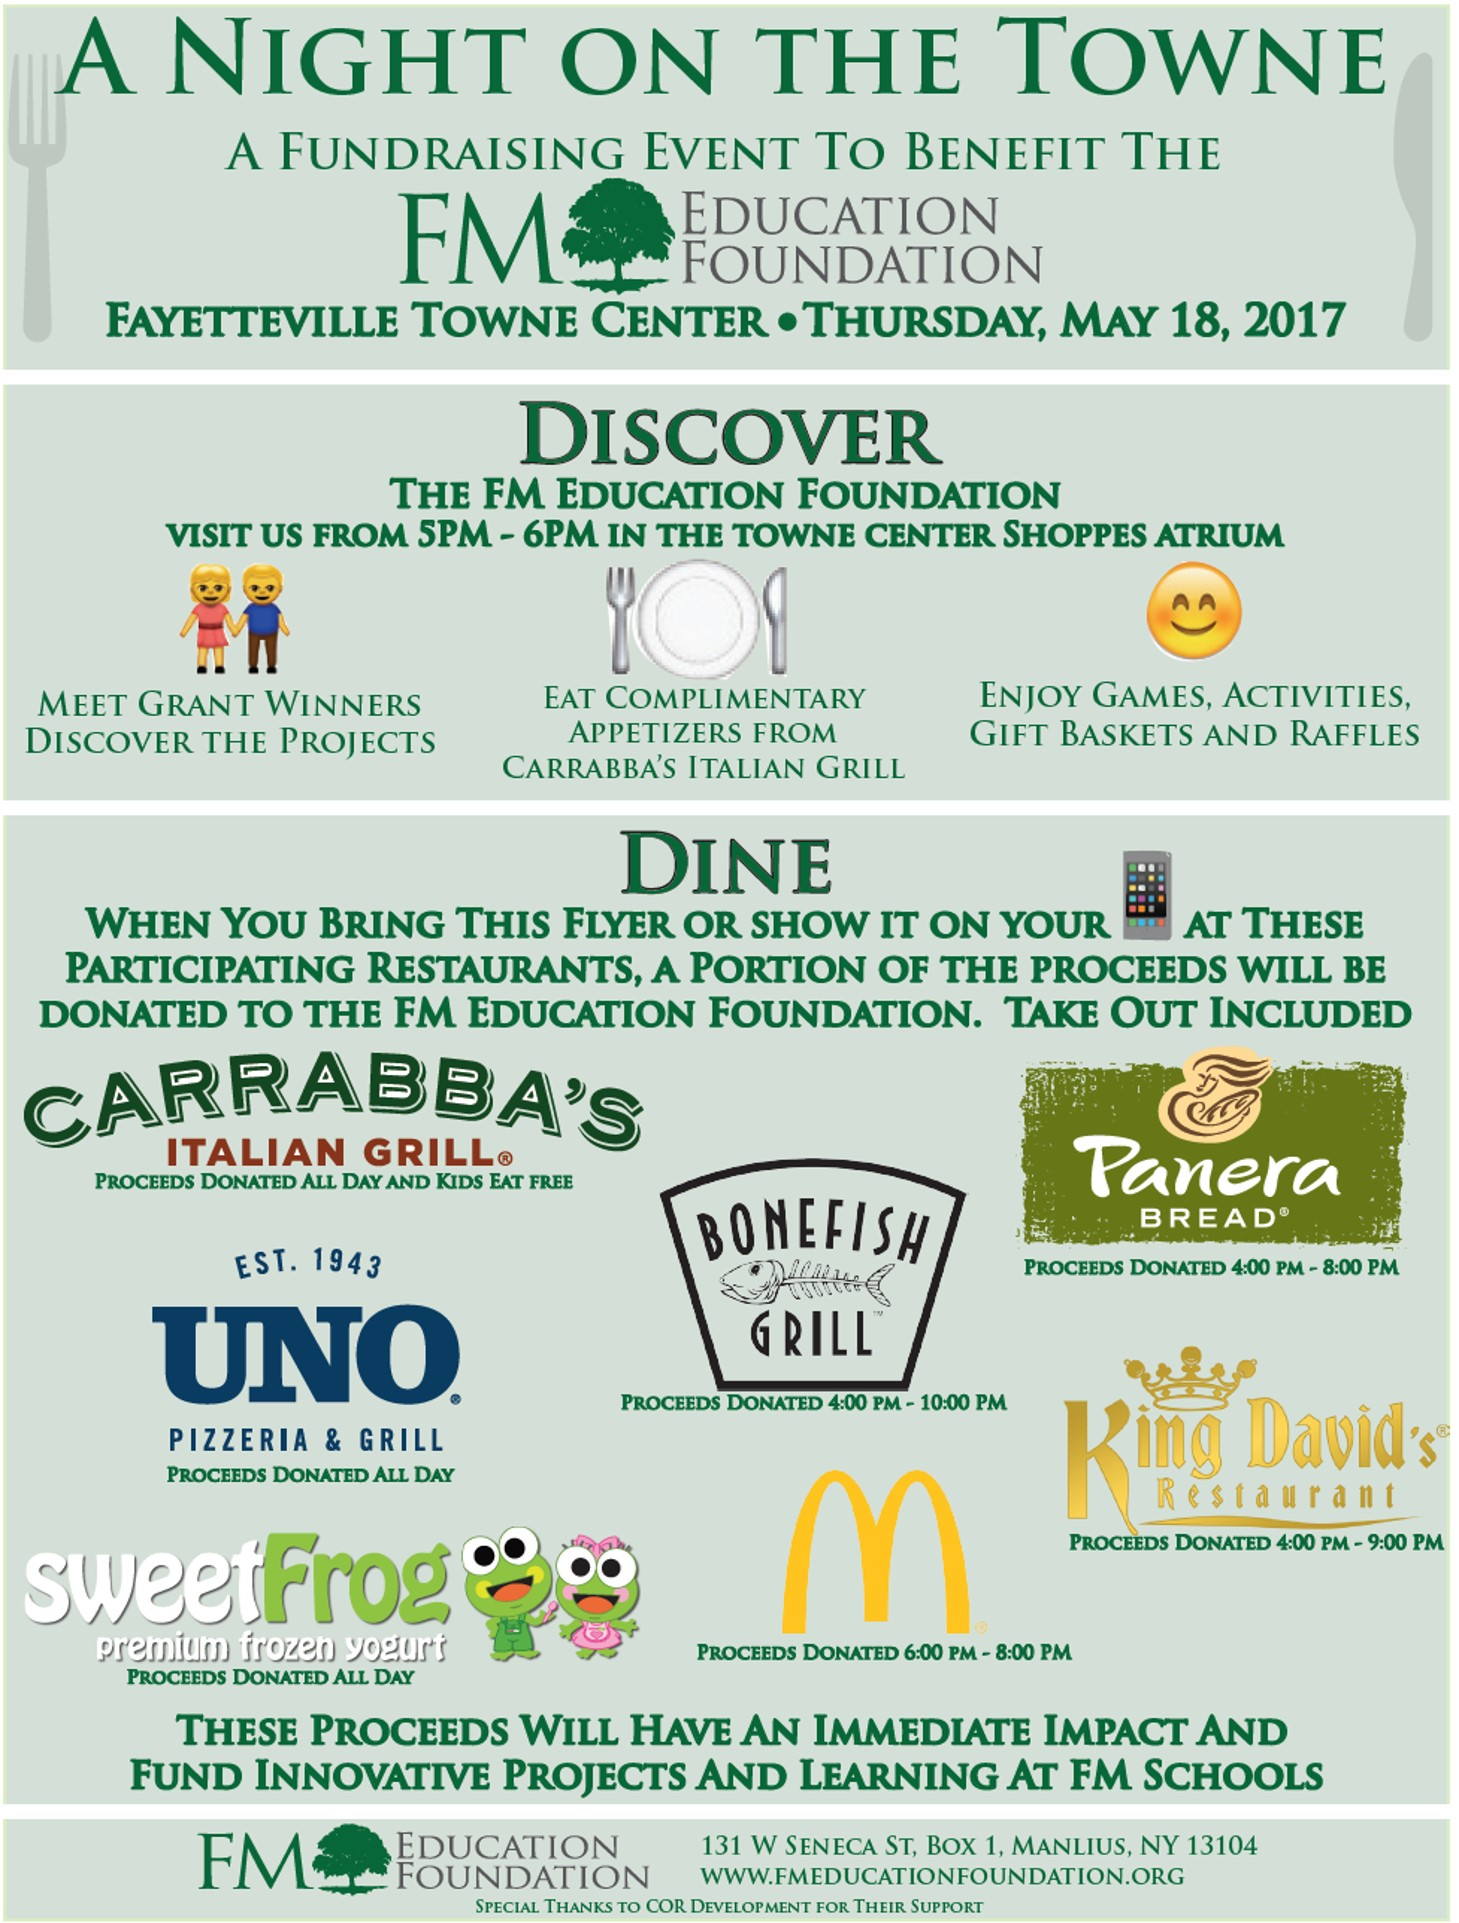 FMEF Night on the Towne 2017